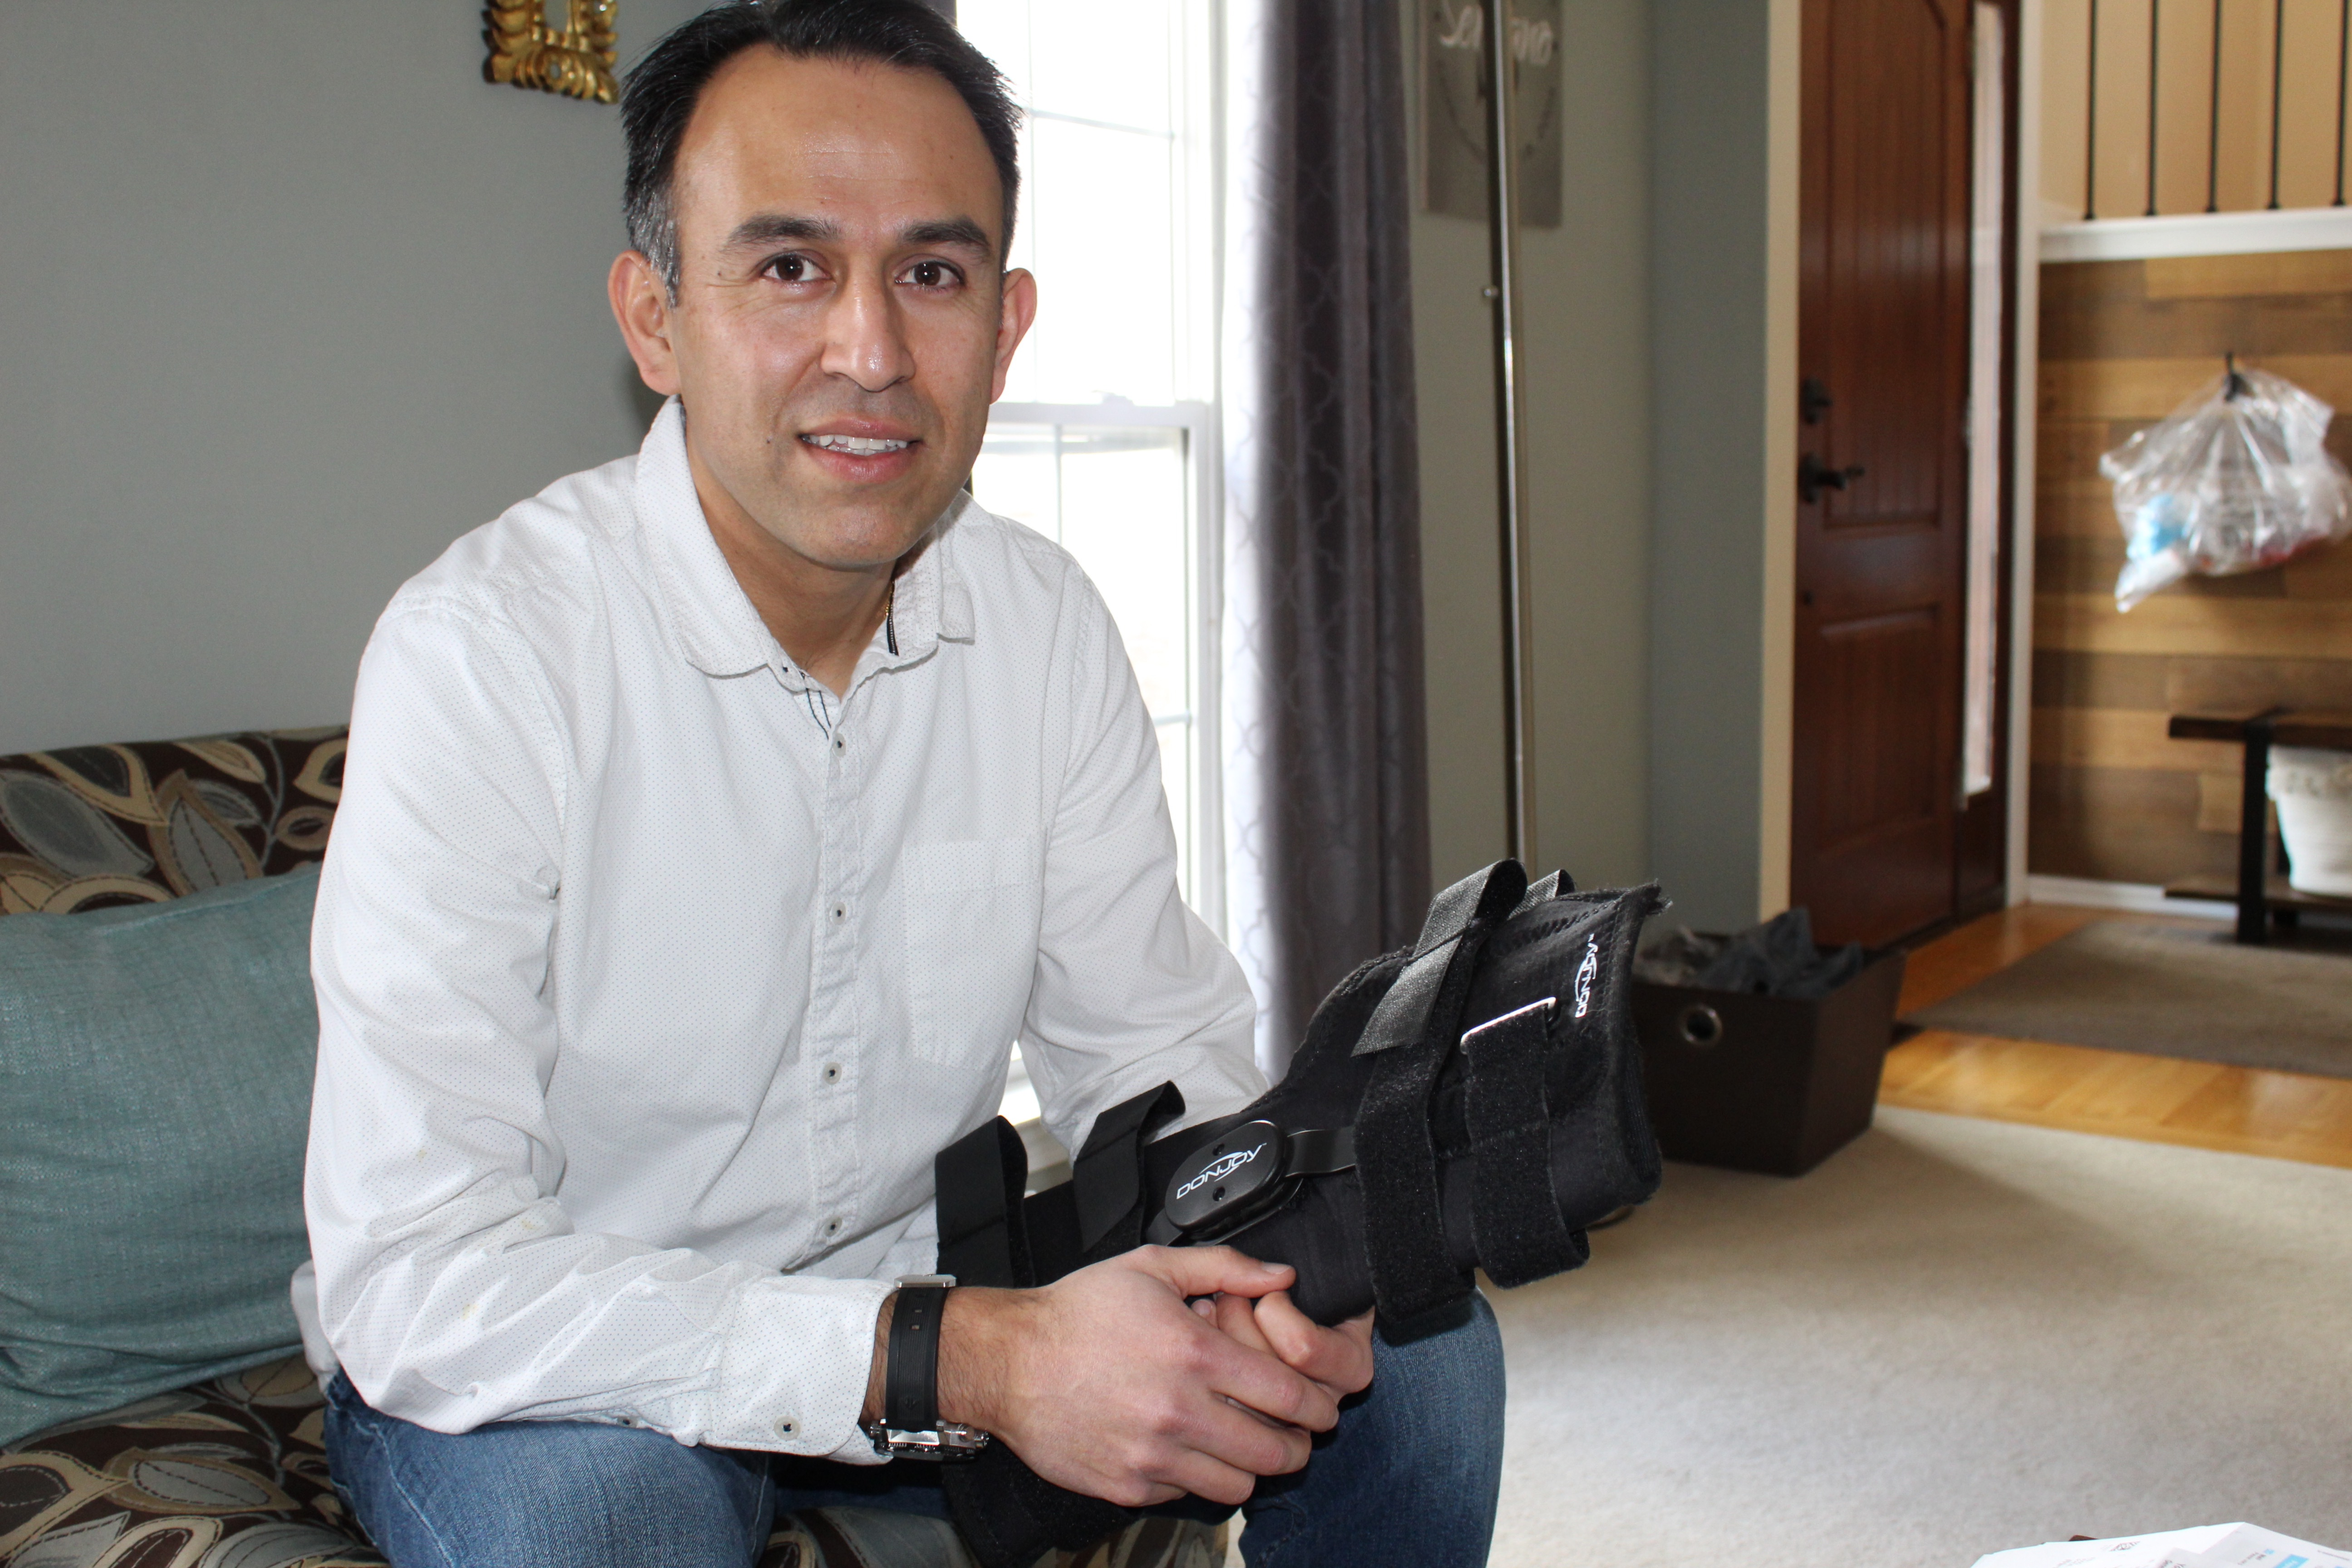 A Hospital Charged This Soccer Player $829 for a Knee Brace. It Costs Less Than $250 Online